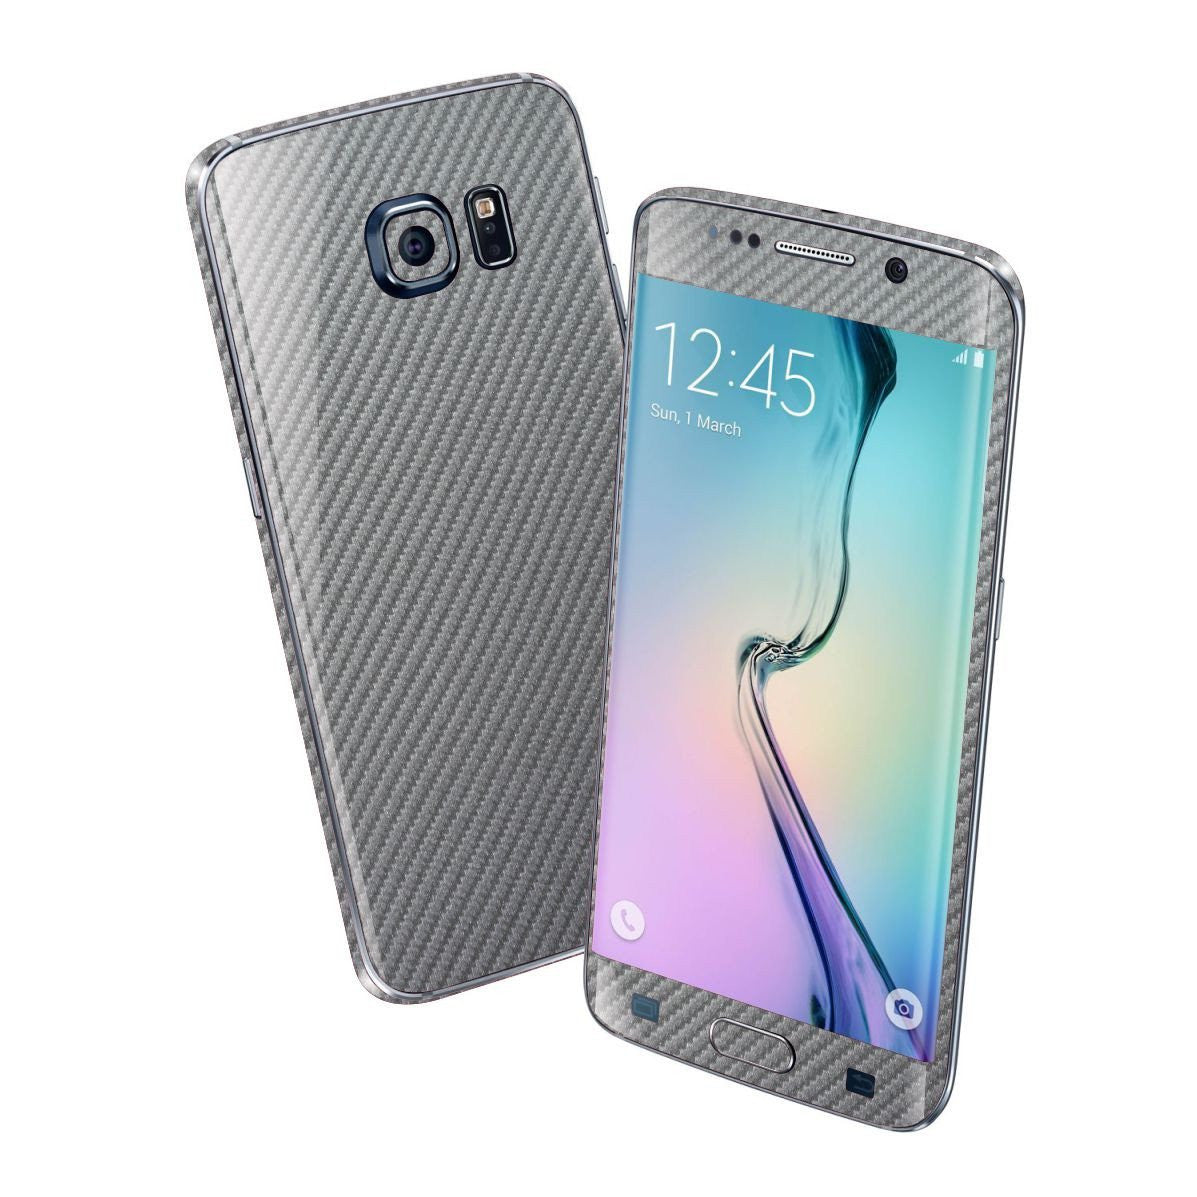 Samsung Galaxy S6 EDGE+ PLUS Metallic Grey 3D CARBON Fibre Fiber Skin Wrap Sticker Cover Decal Protector by EasySkinz